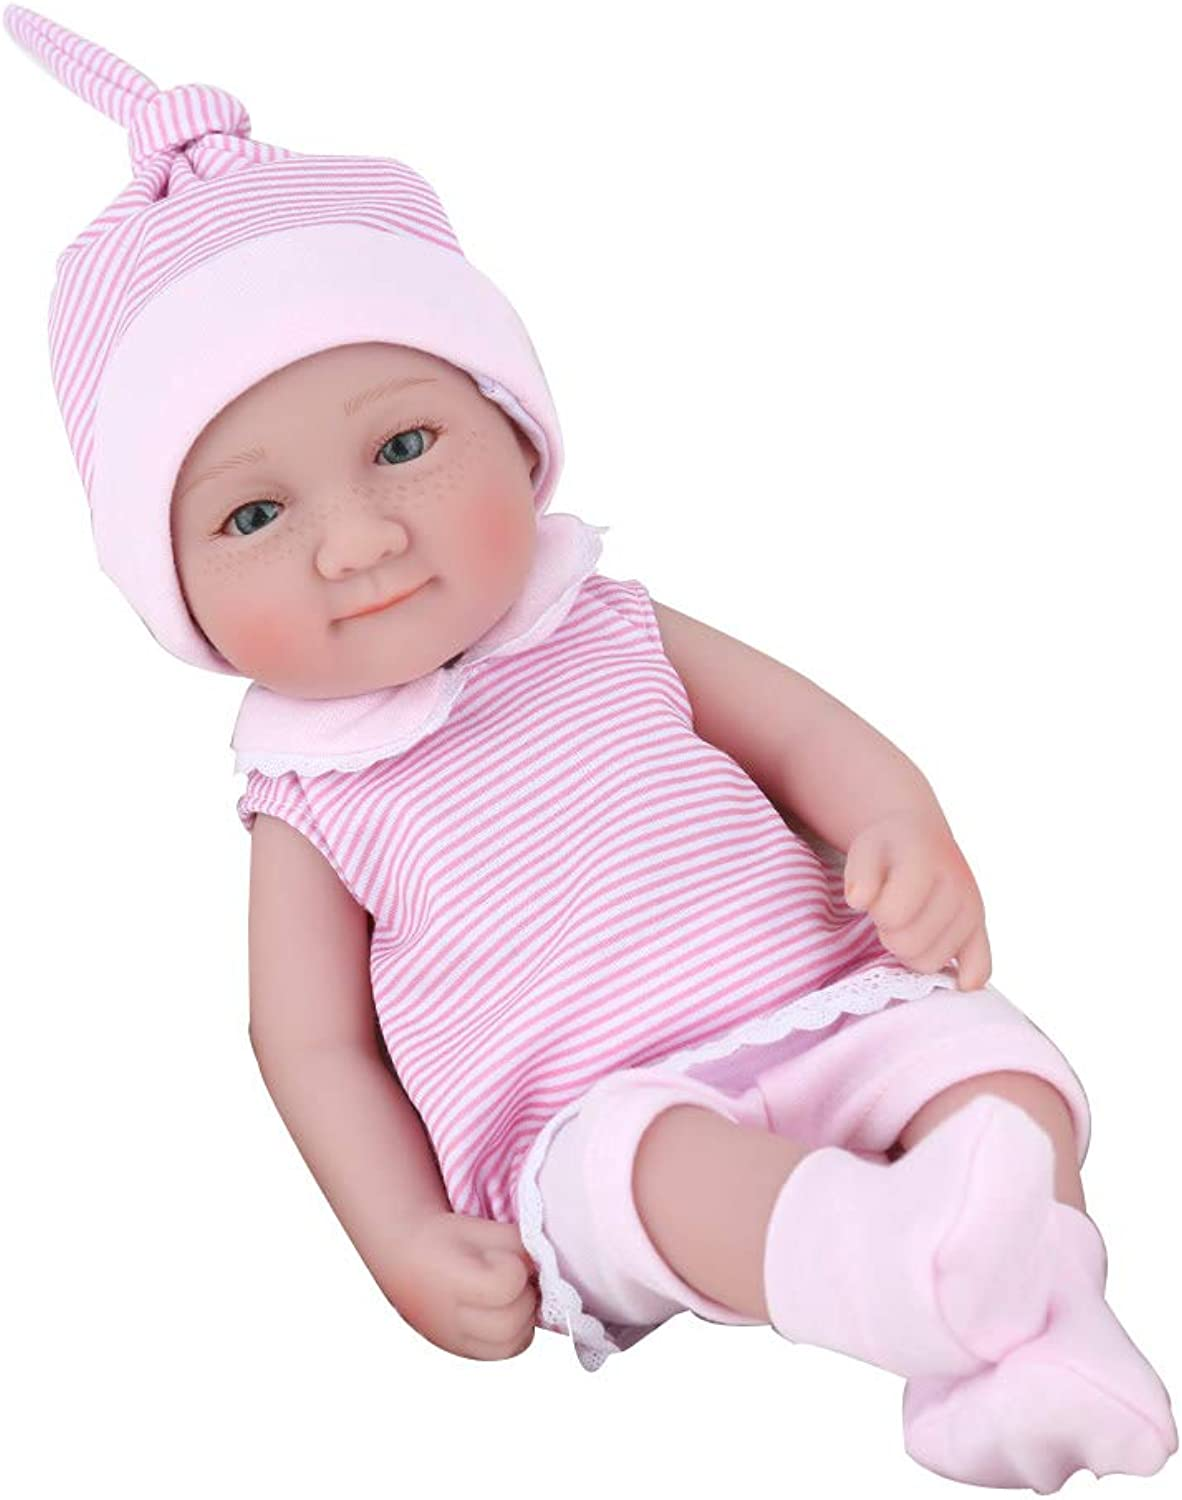 CHENG Simulation Doll Reborn Realistic Baby Soft Silicone Dolls Cute Waterproof Newborn Babies